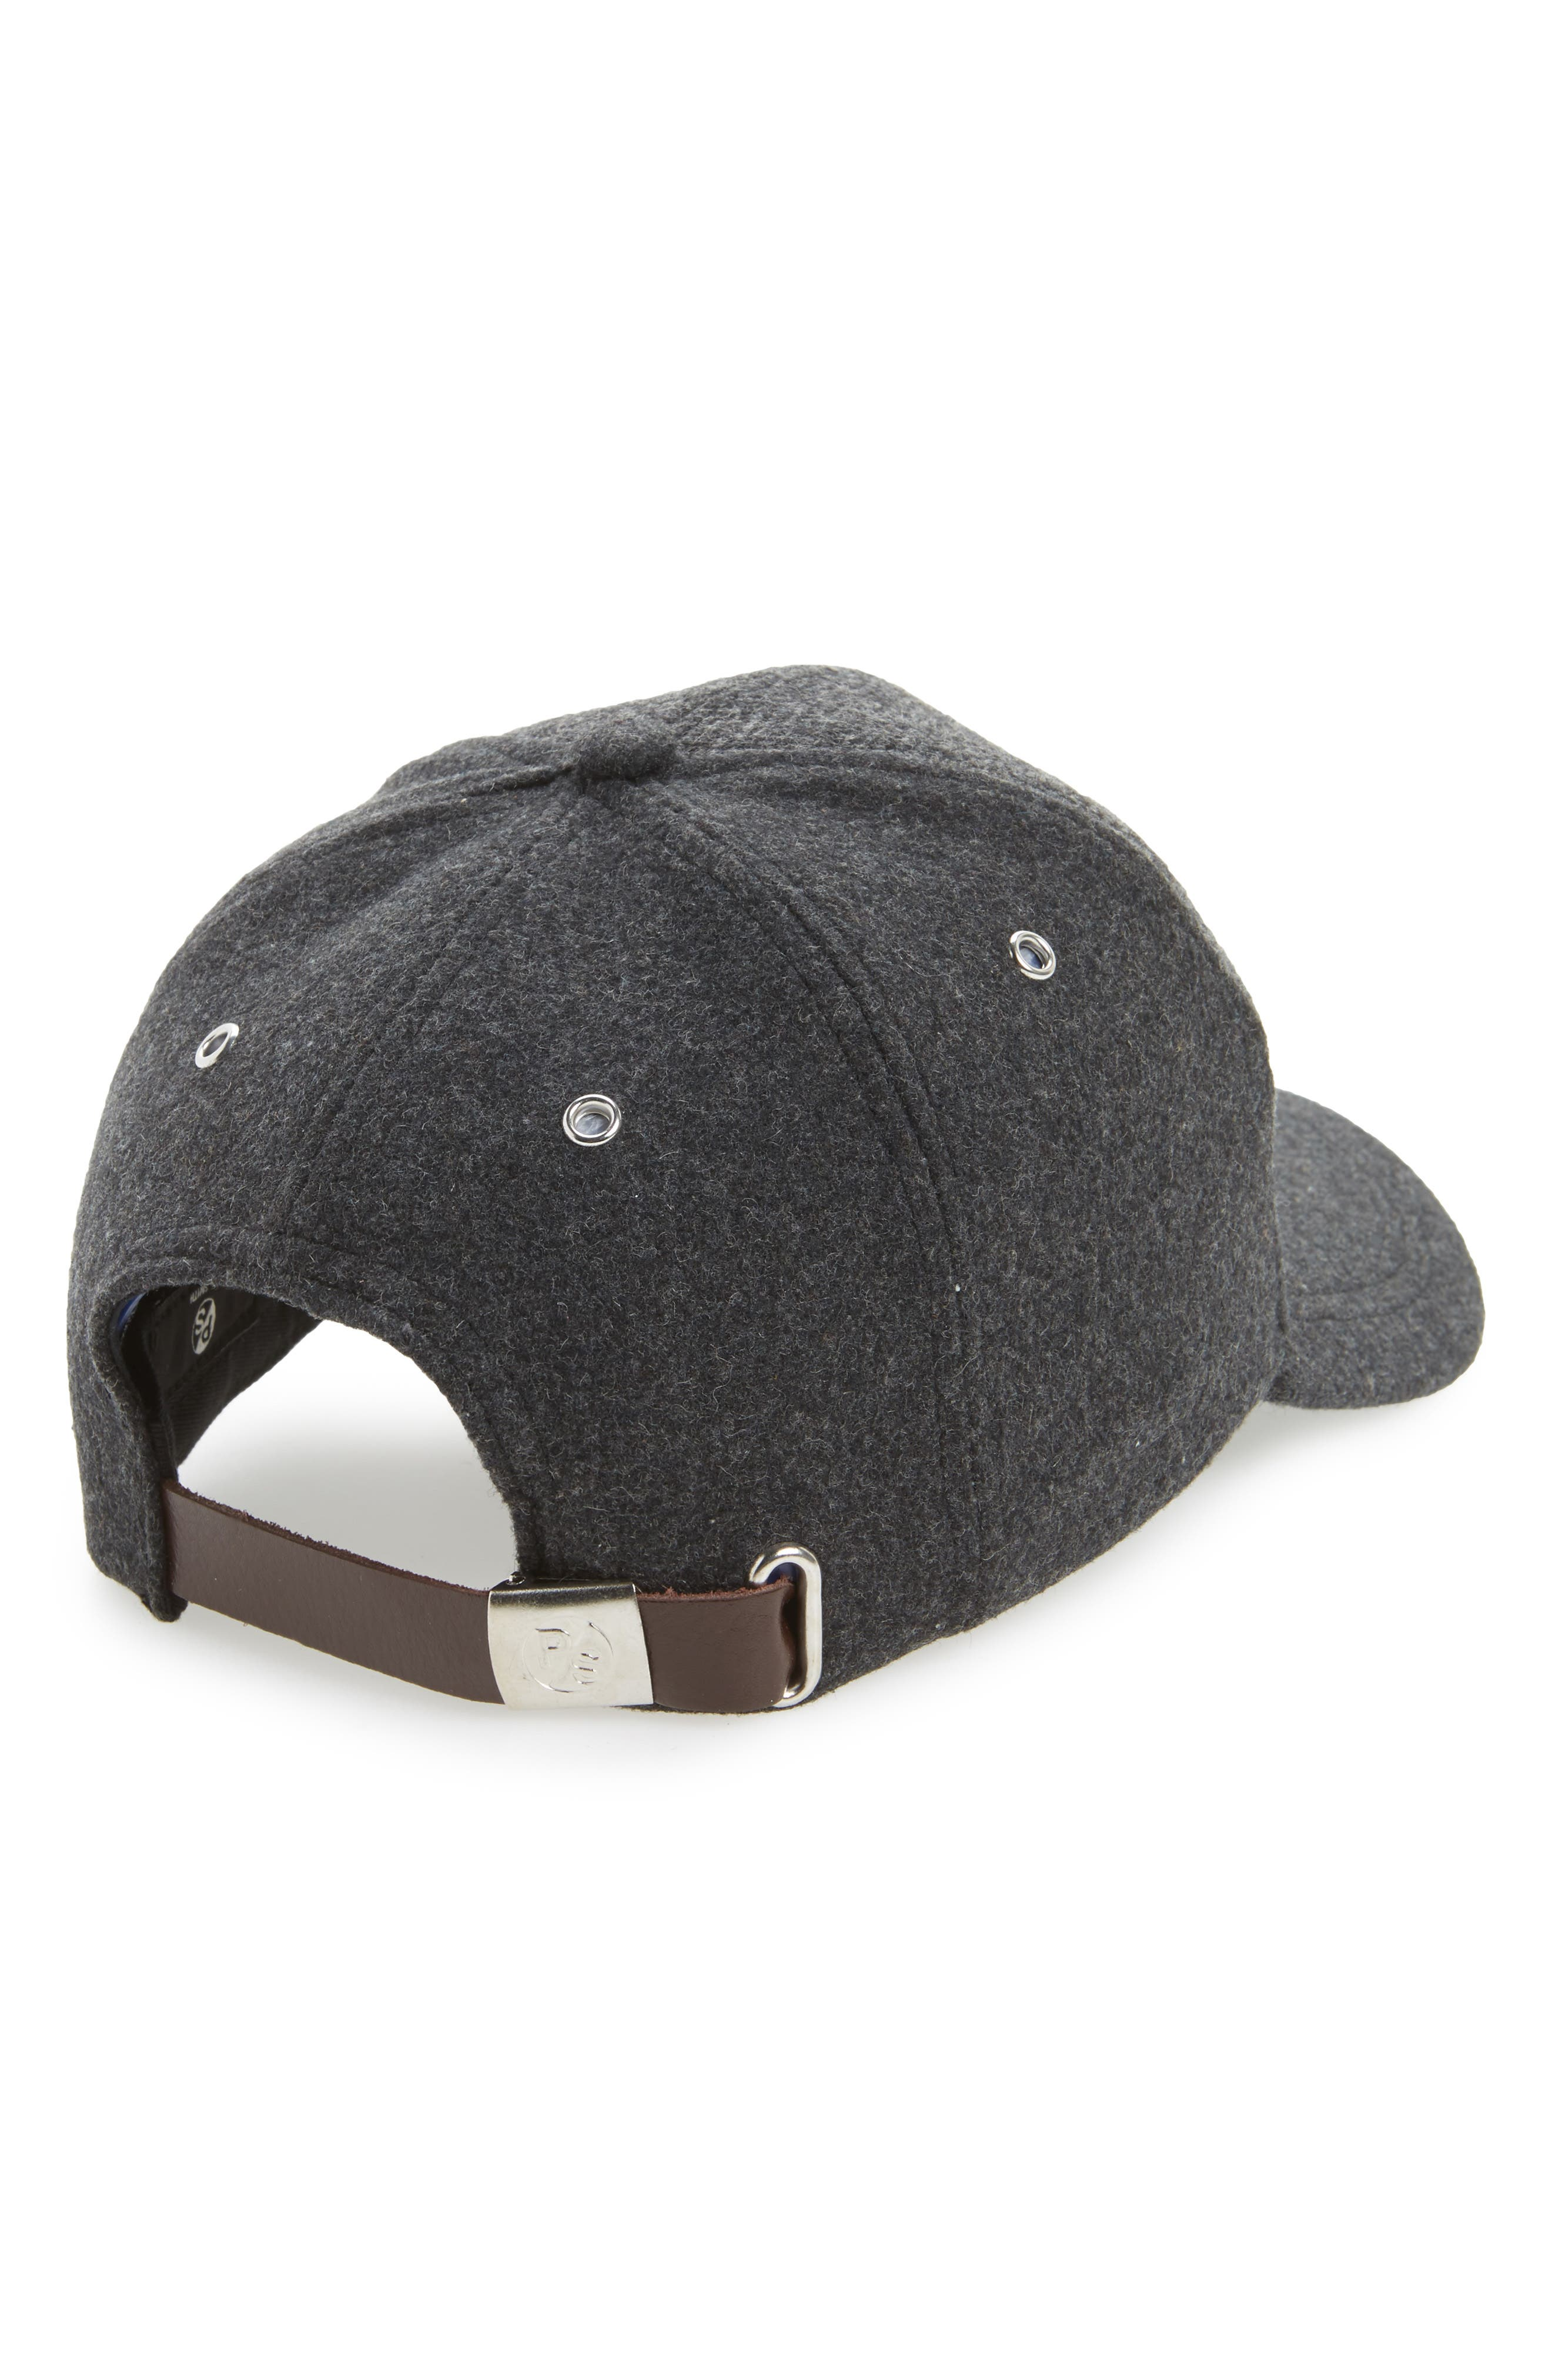 Herringbone Baseball Cap,                             Alternate thumbnail 2, color,                             021